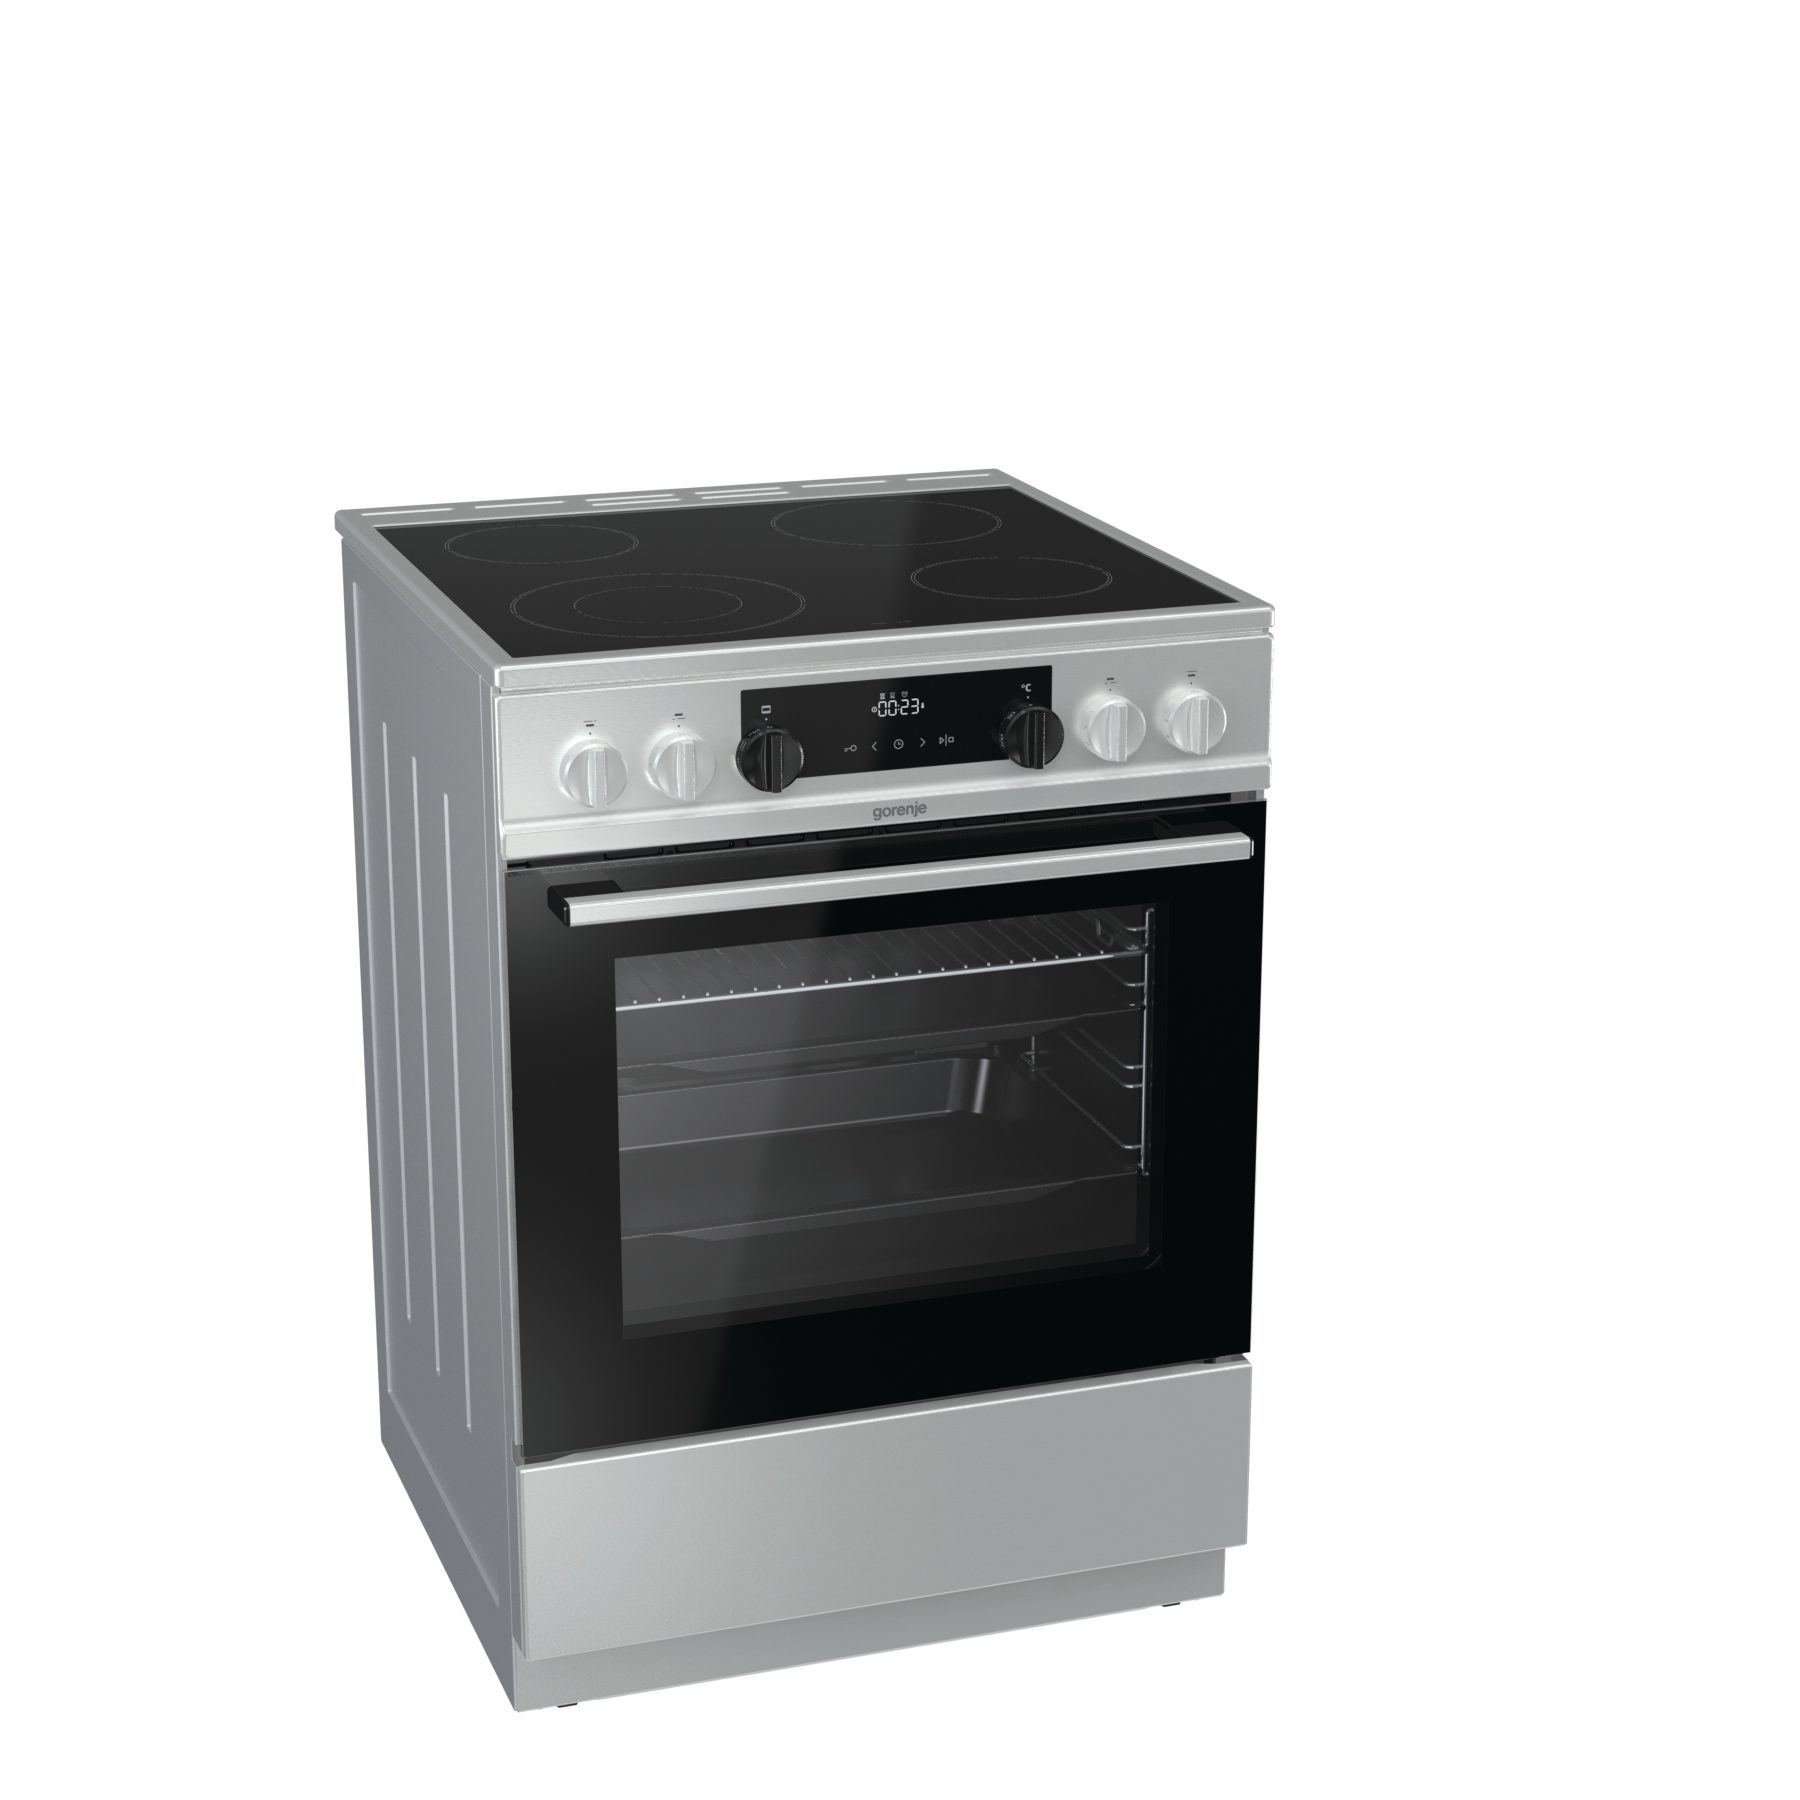 Gorenje Double Oven Manual Best 2018 Hard Wiring Zsi Along With Bosch Microwave Ovens Electric Cooker Ec6351xc